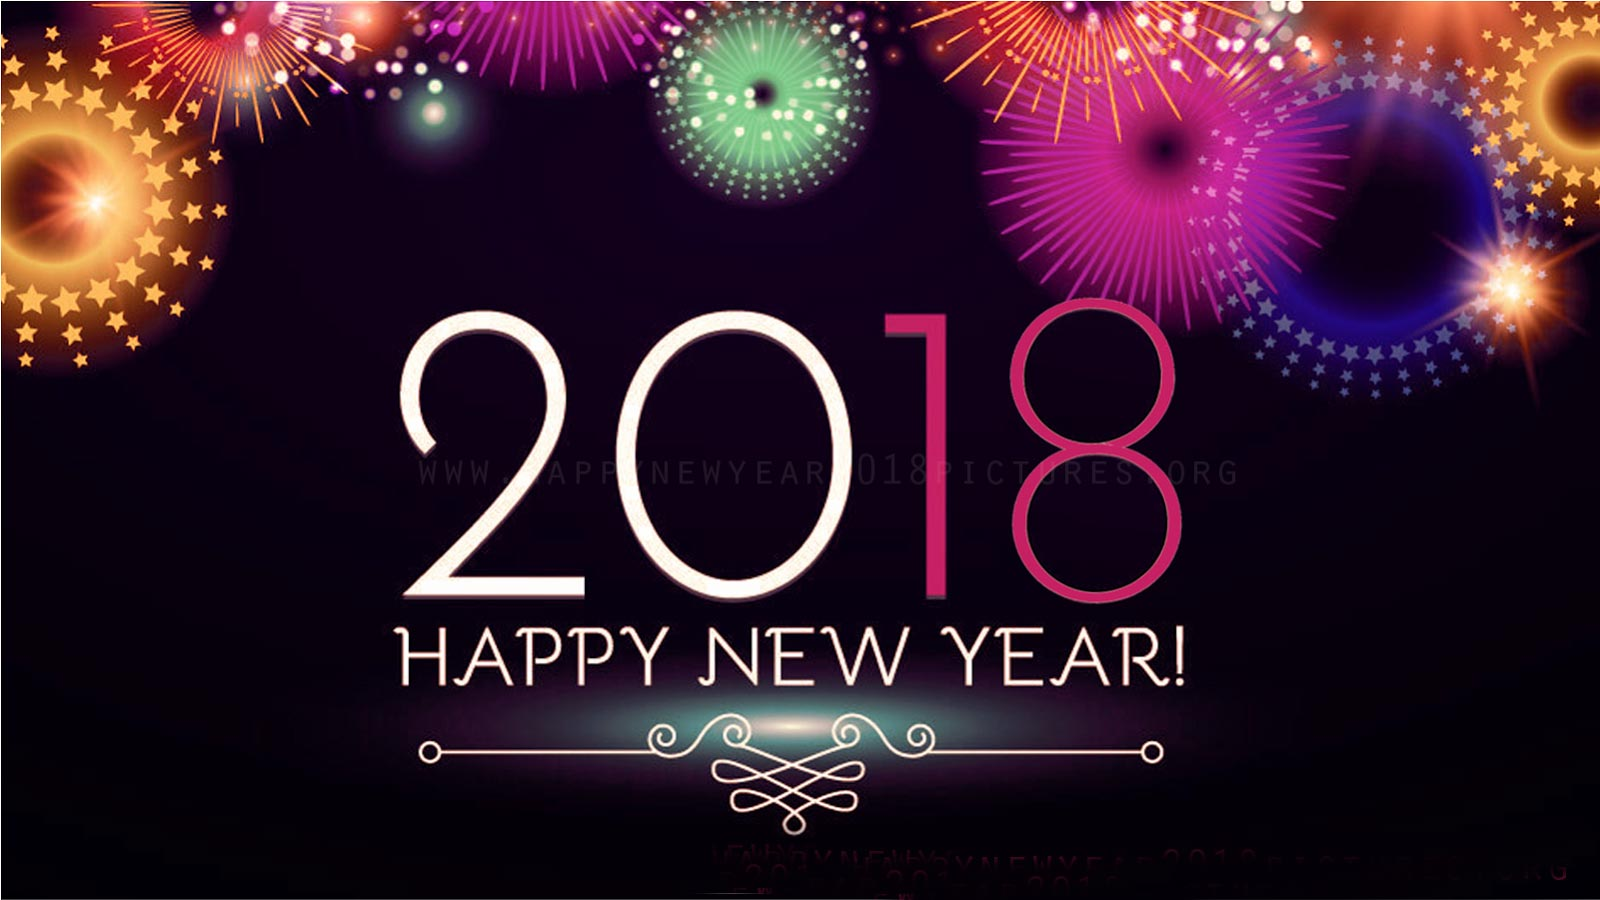 New Year Wallpapers Happy New Year 2018 Images Happy New Year 2018 Wishes Happy New Year 2018 Wallpapers Happy New Year 2018 Eve Happy New Year 2018